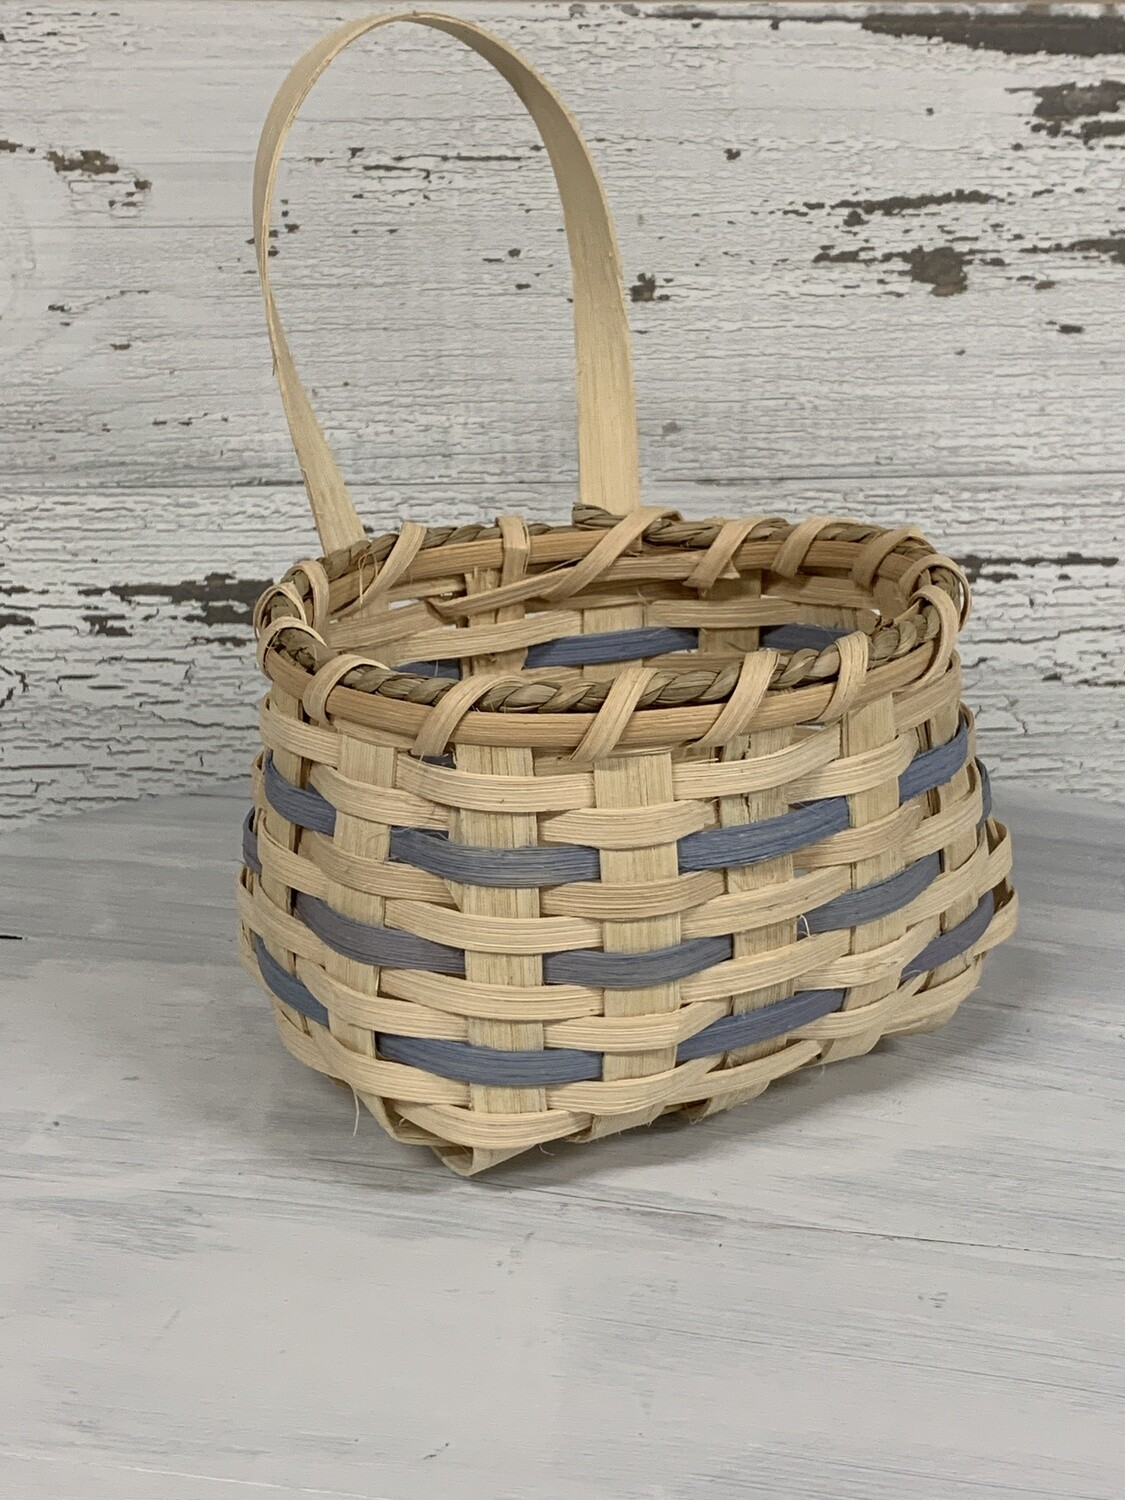 Baskets by Rita